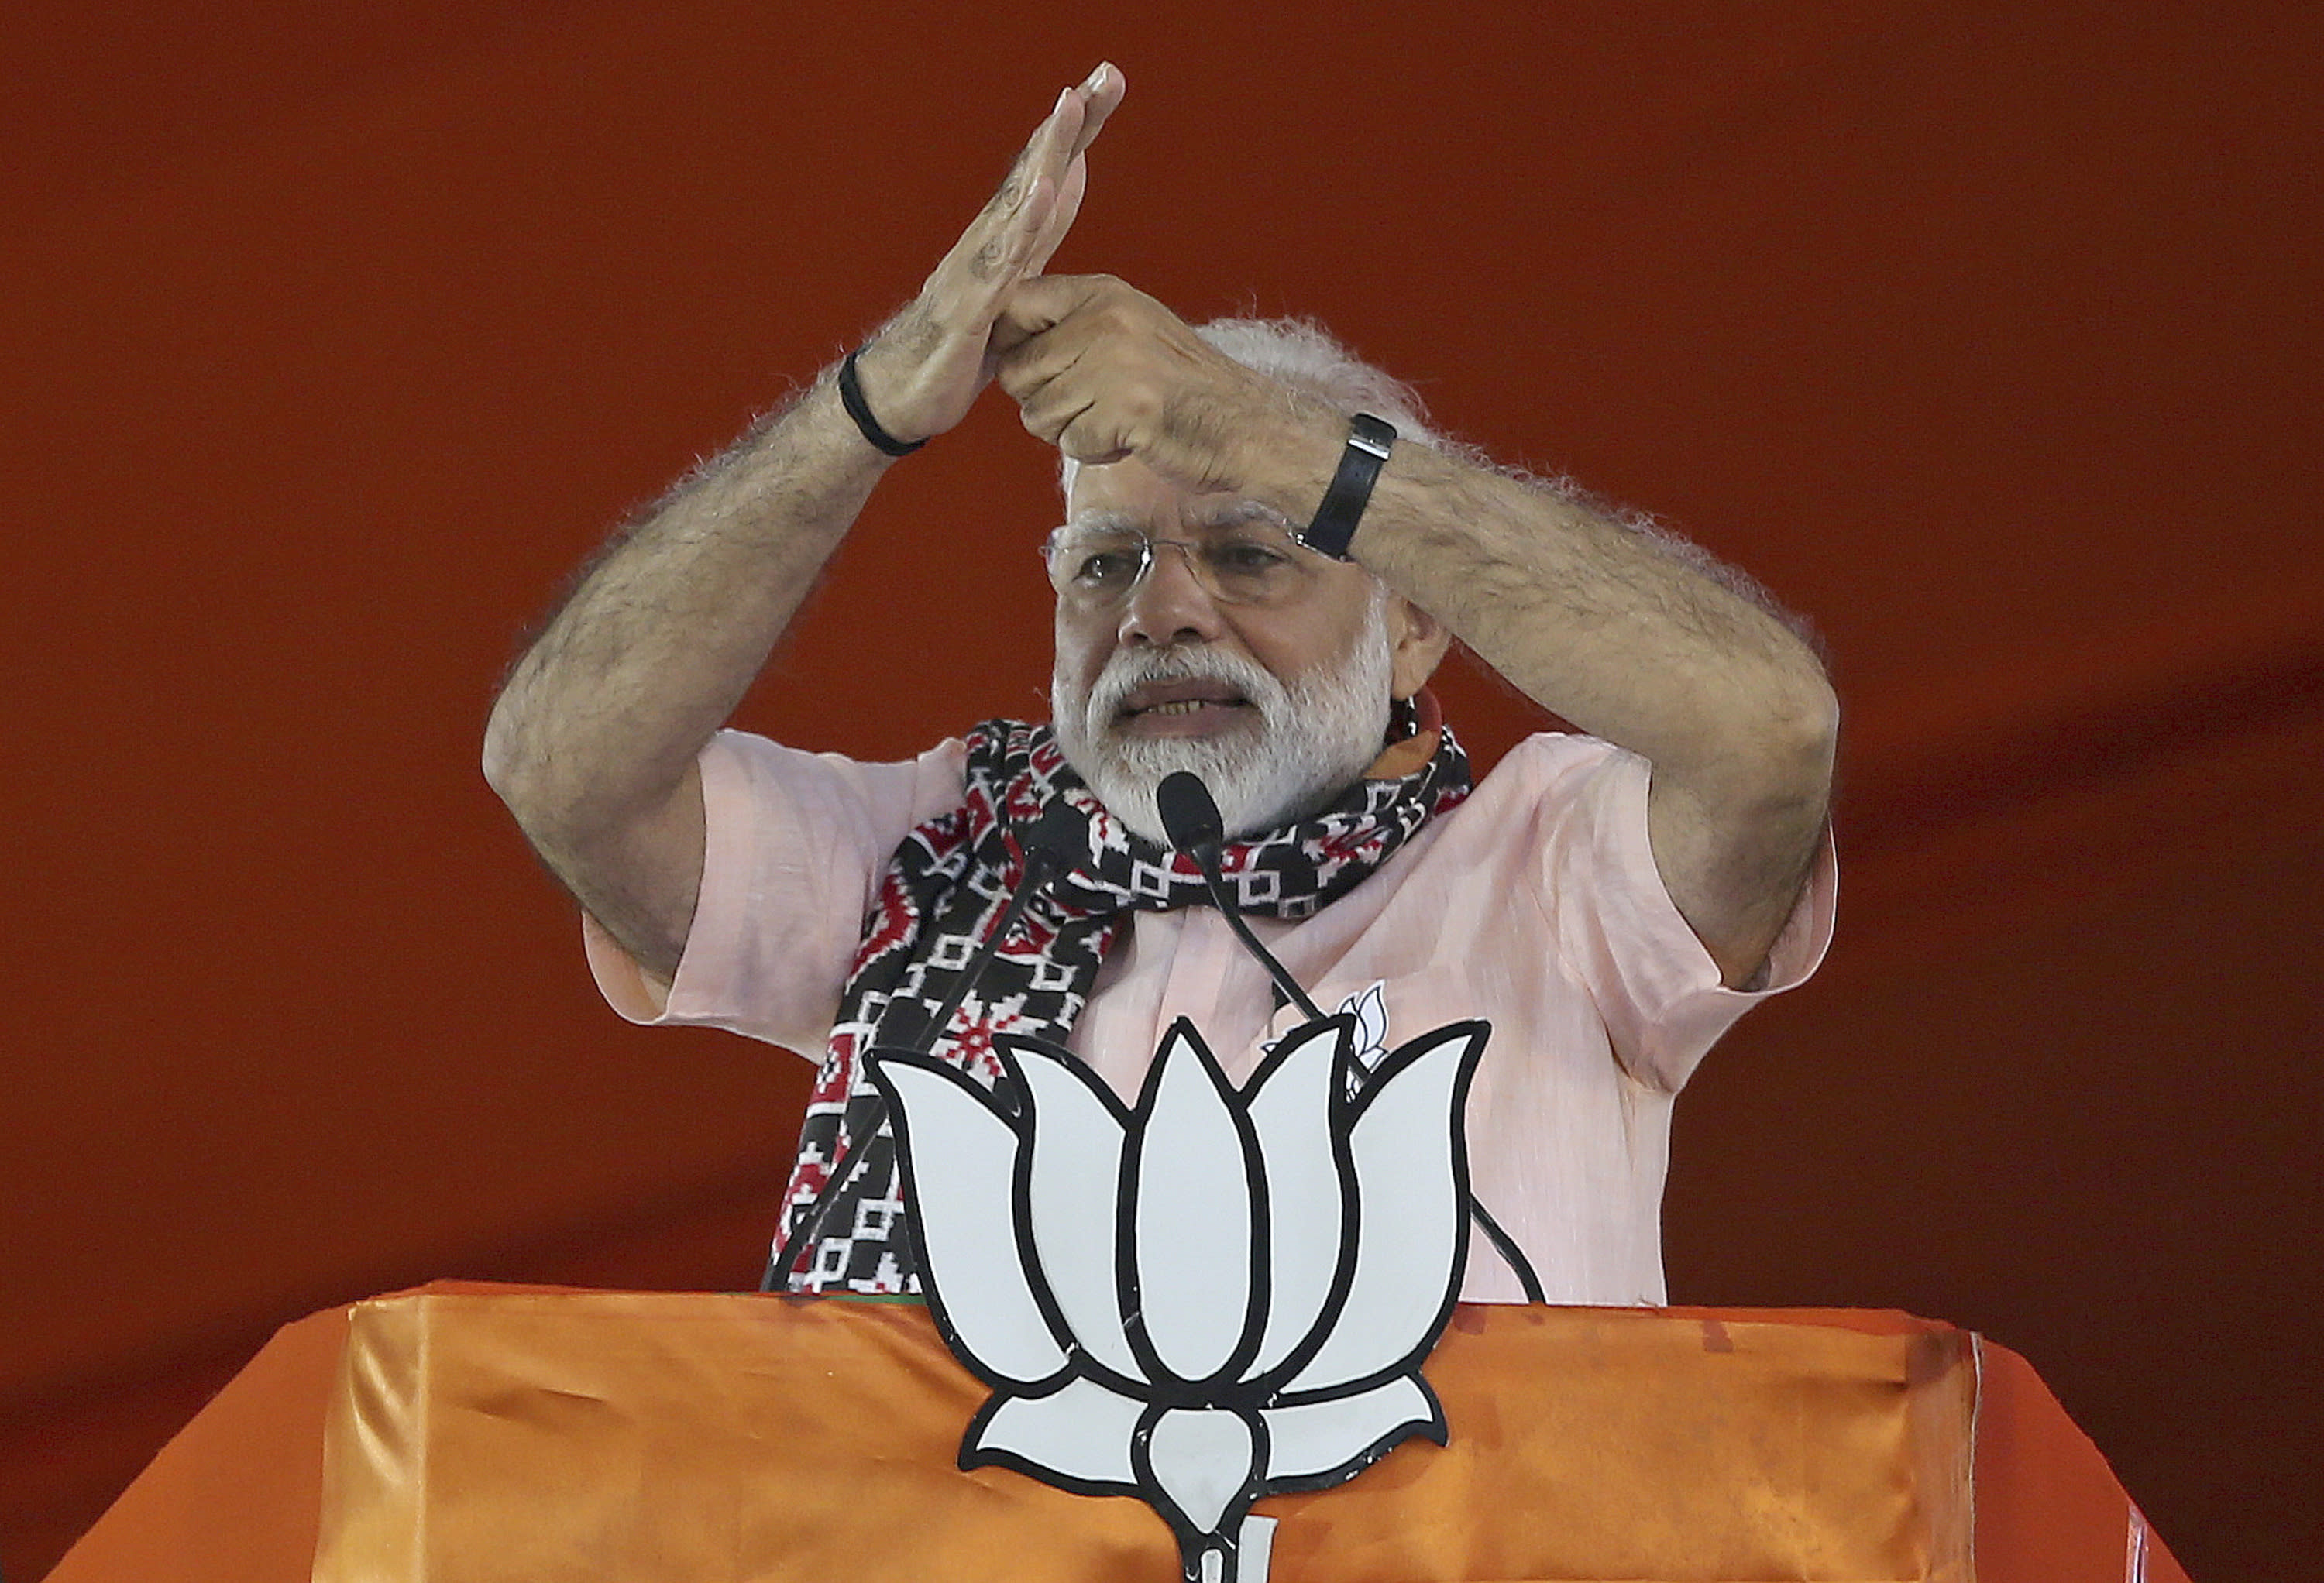 "FILE - In this April 1, 2019, file photo, Indian Prime Minister Narendra Modi gestures as he speaks during an election campaign rally of his Bharatiya Janata Party (BJP) in Hyderabad, India. Modi has promised early elections in the Indian-controlled portion of Kashmir days after stripping it of statehood and turning it into a federally administered territory. In an address to the nation late Thursday, Aug. 8, Modi said the change in Kashmir's set-up will help free the disputed region of ""terrorism and separatism"" and put it on a path of development. (AP Photo/Mahesh Kumar A., File)"